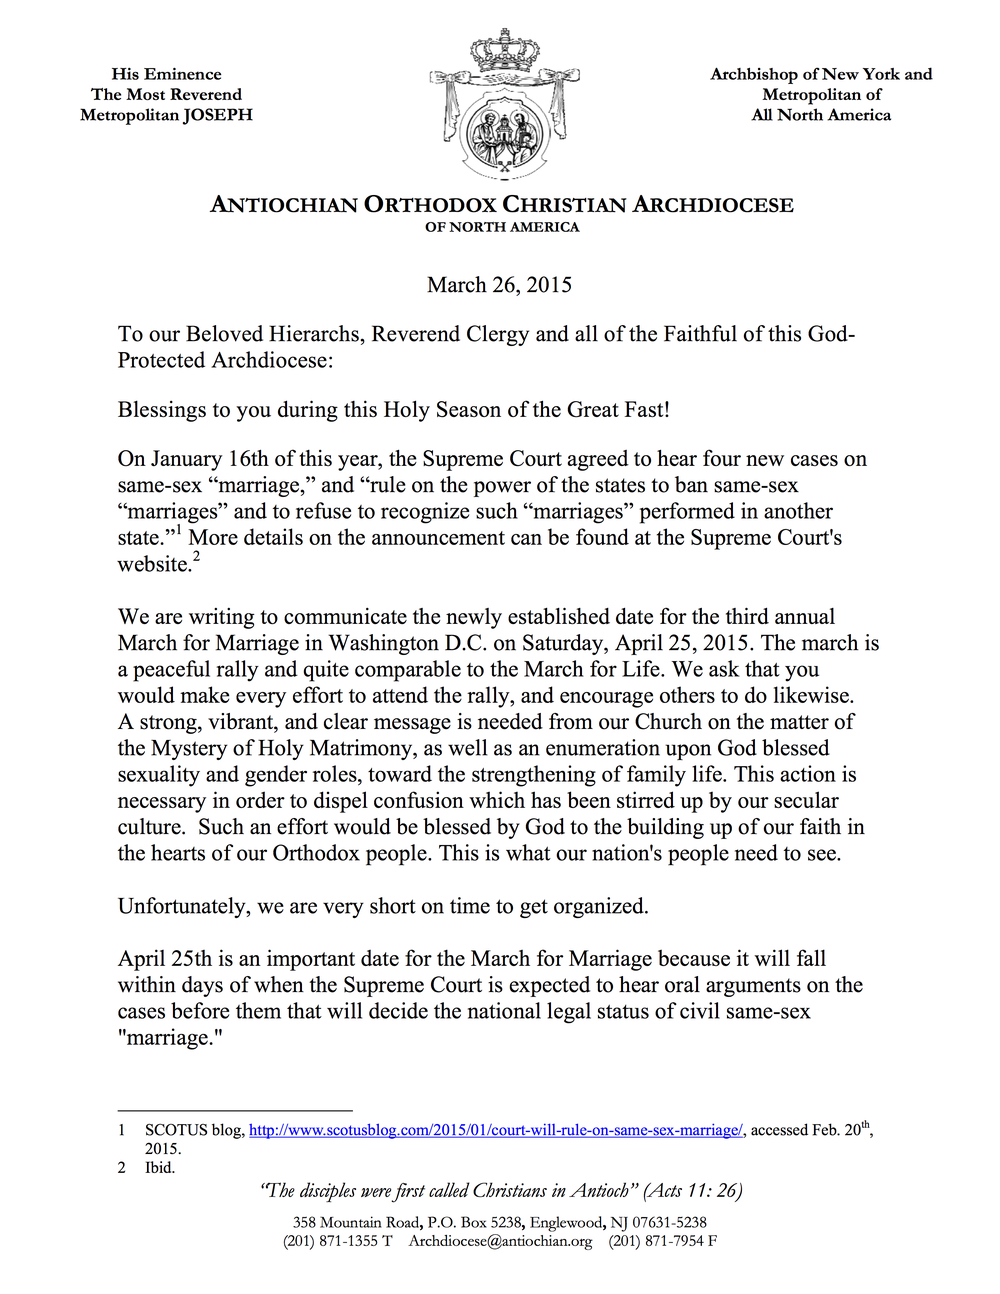 Click image to download a PDF of His Eminence's letter of blessing.